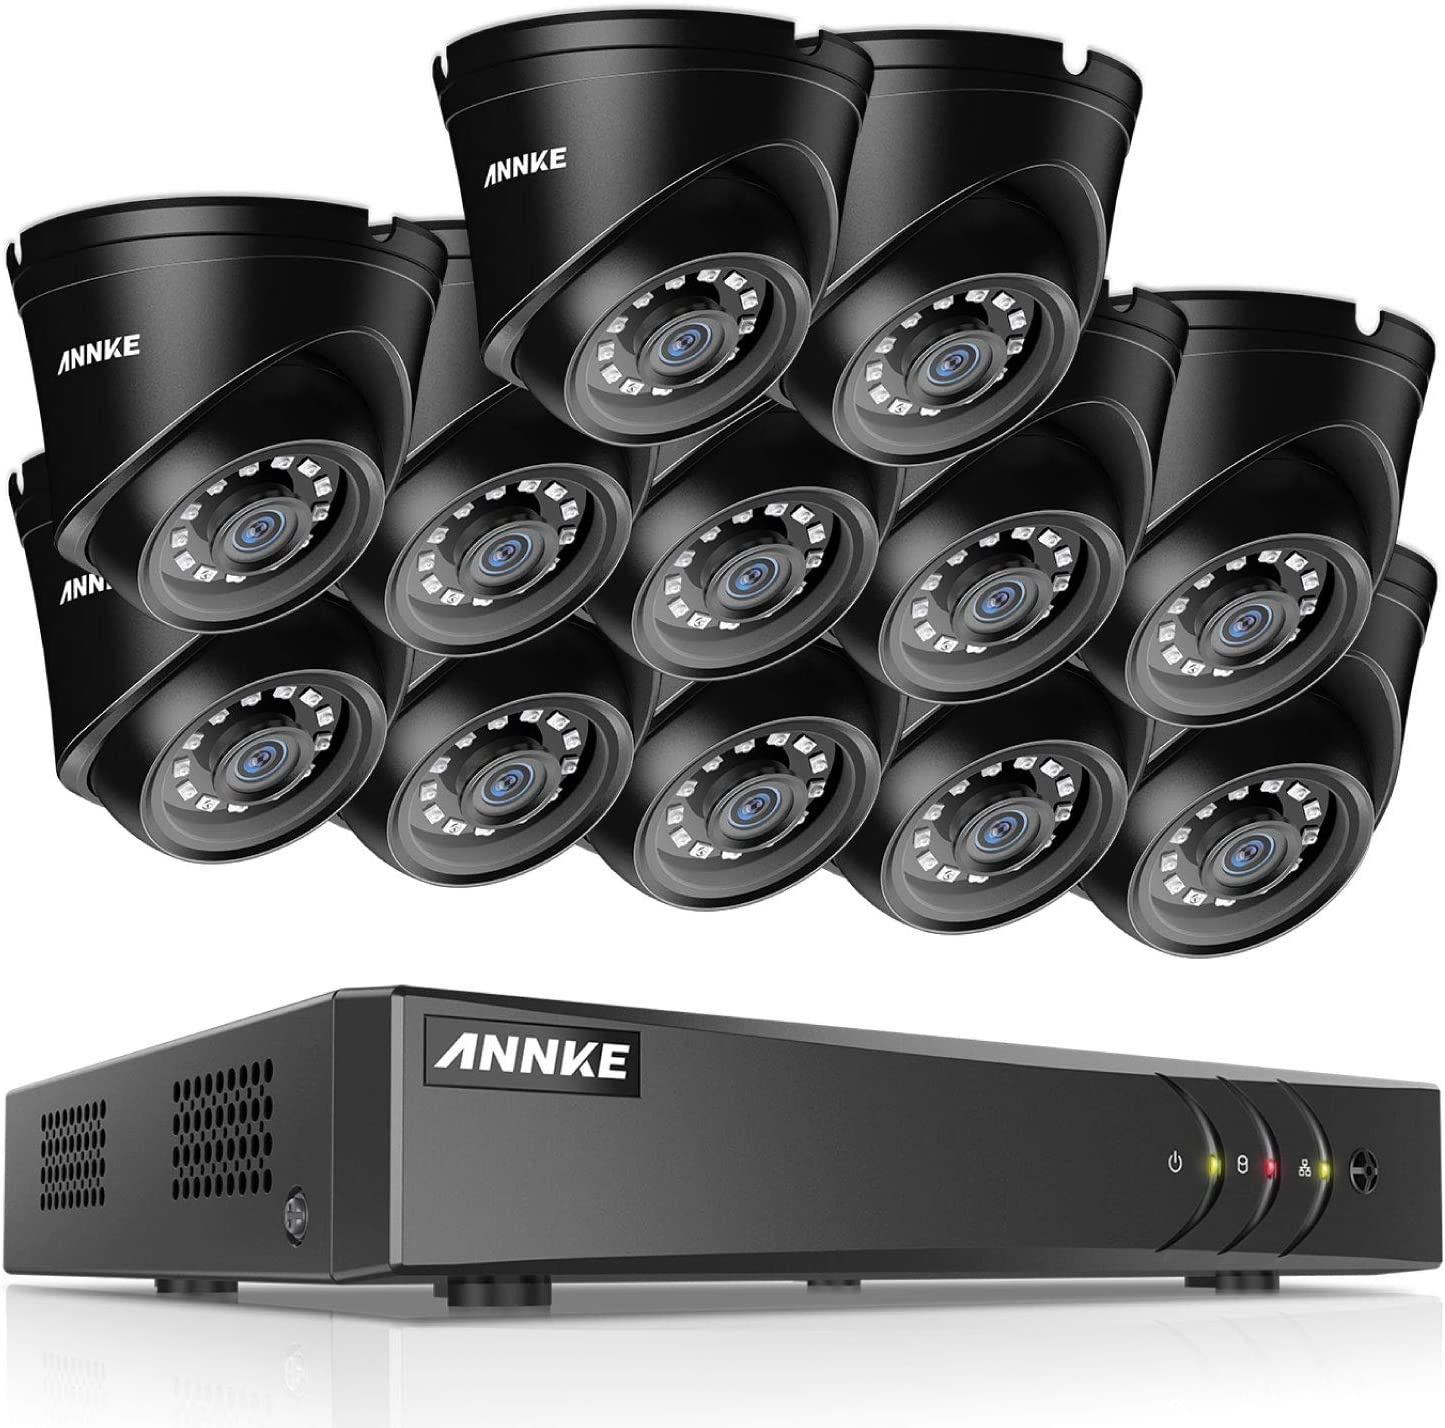 ANNKE 16-Channel HD-TVI 1080P Lite Security System and 12 1080P Super Night Vision CCTV OutdoorCameras, Intelligent Motion Detection, Smartphone Remote Monitoring, NO HDD